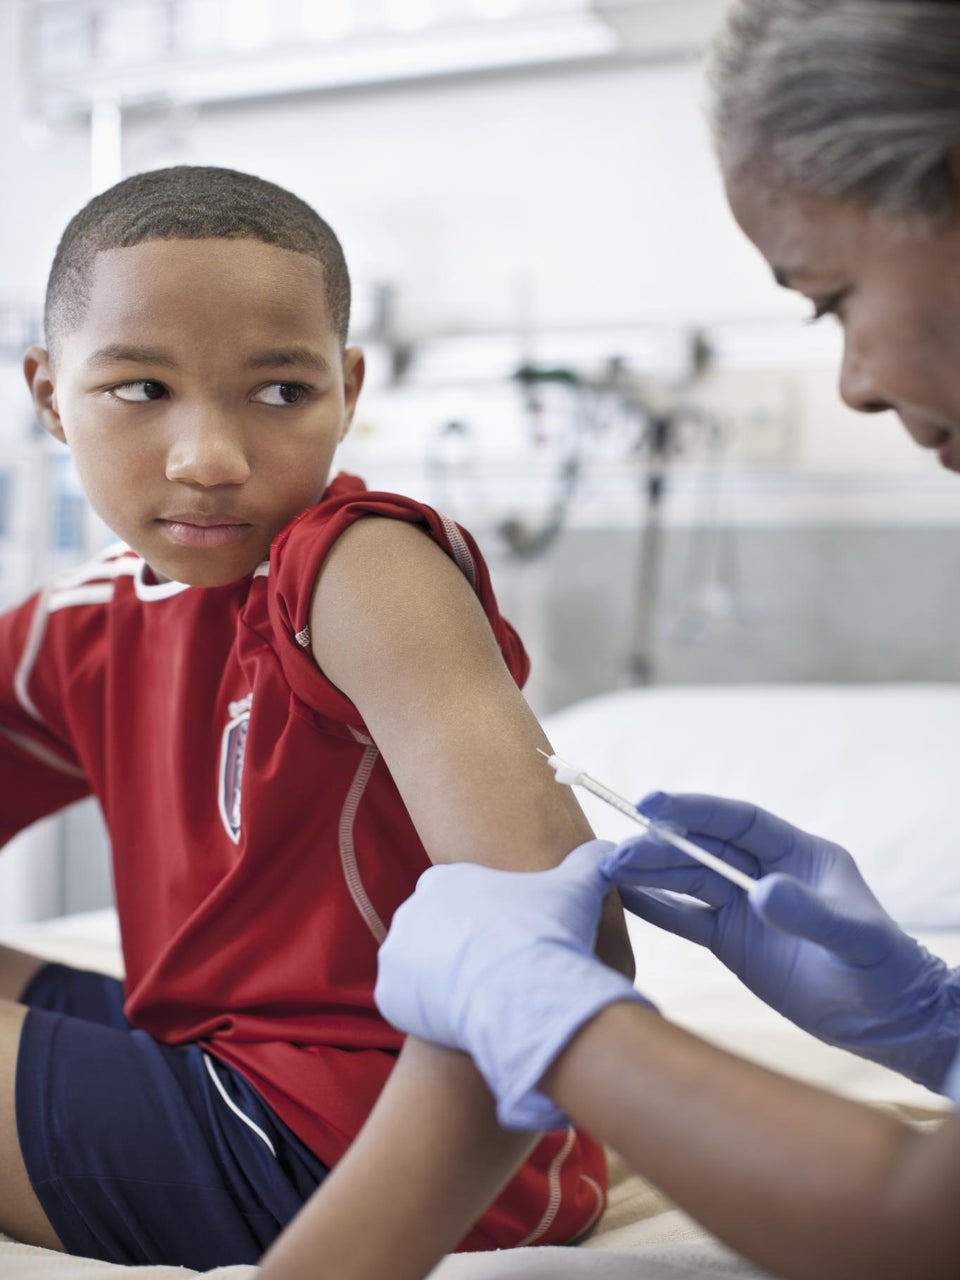 ESSENCE Poll: How Do You Feel About Vaccinating Your Kids?